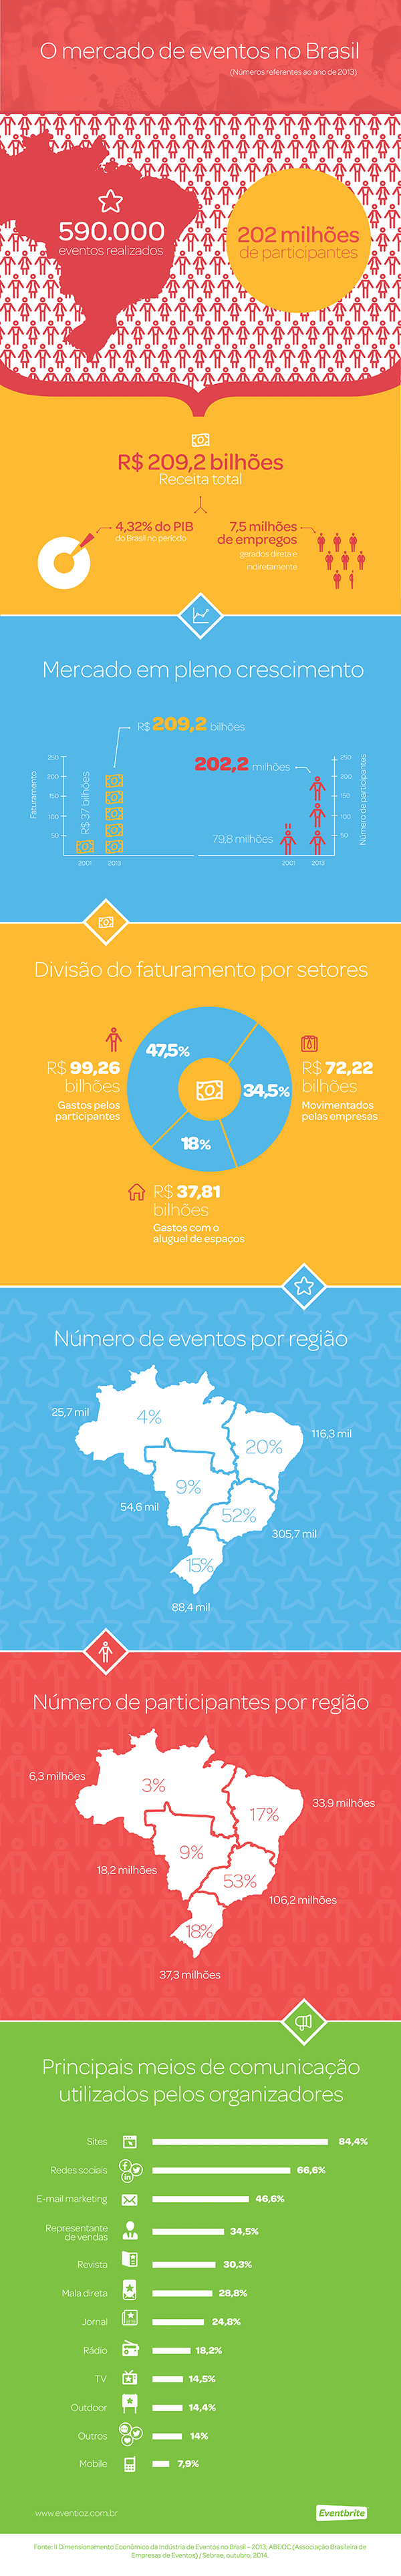 o-mercado-01-infografico-eventioz-web-ok